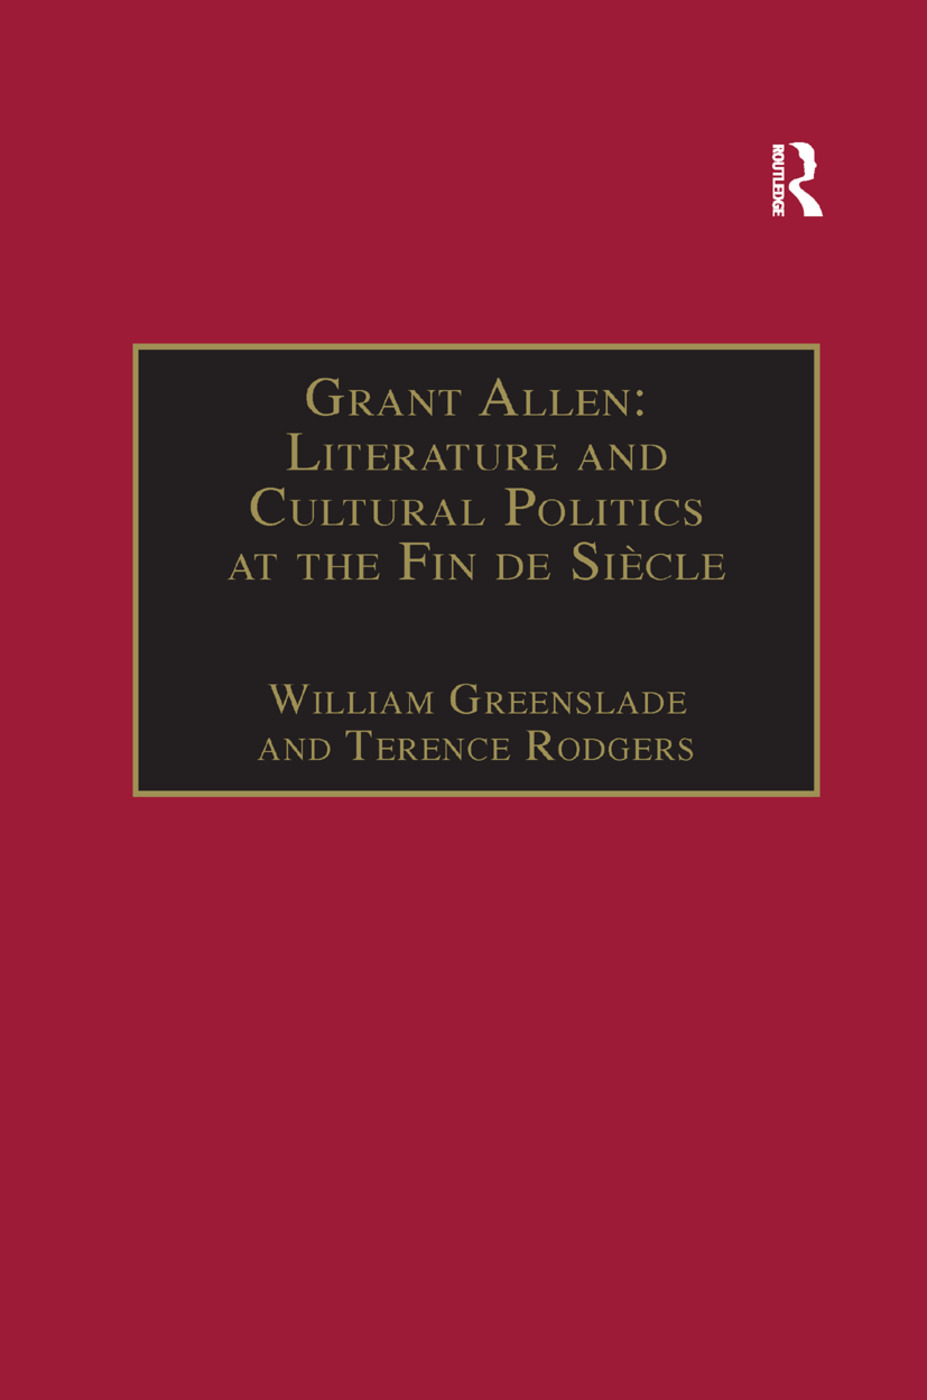 Grant Allen: Literature and Cultural Politics at the Fin de Siècle book cover